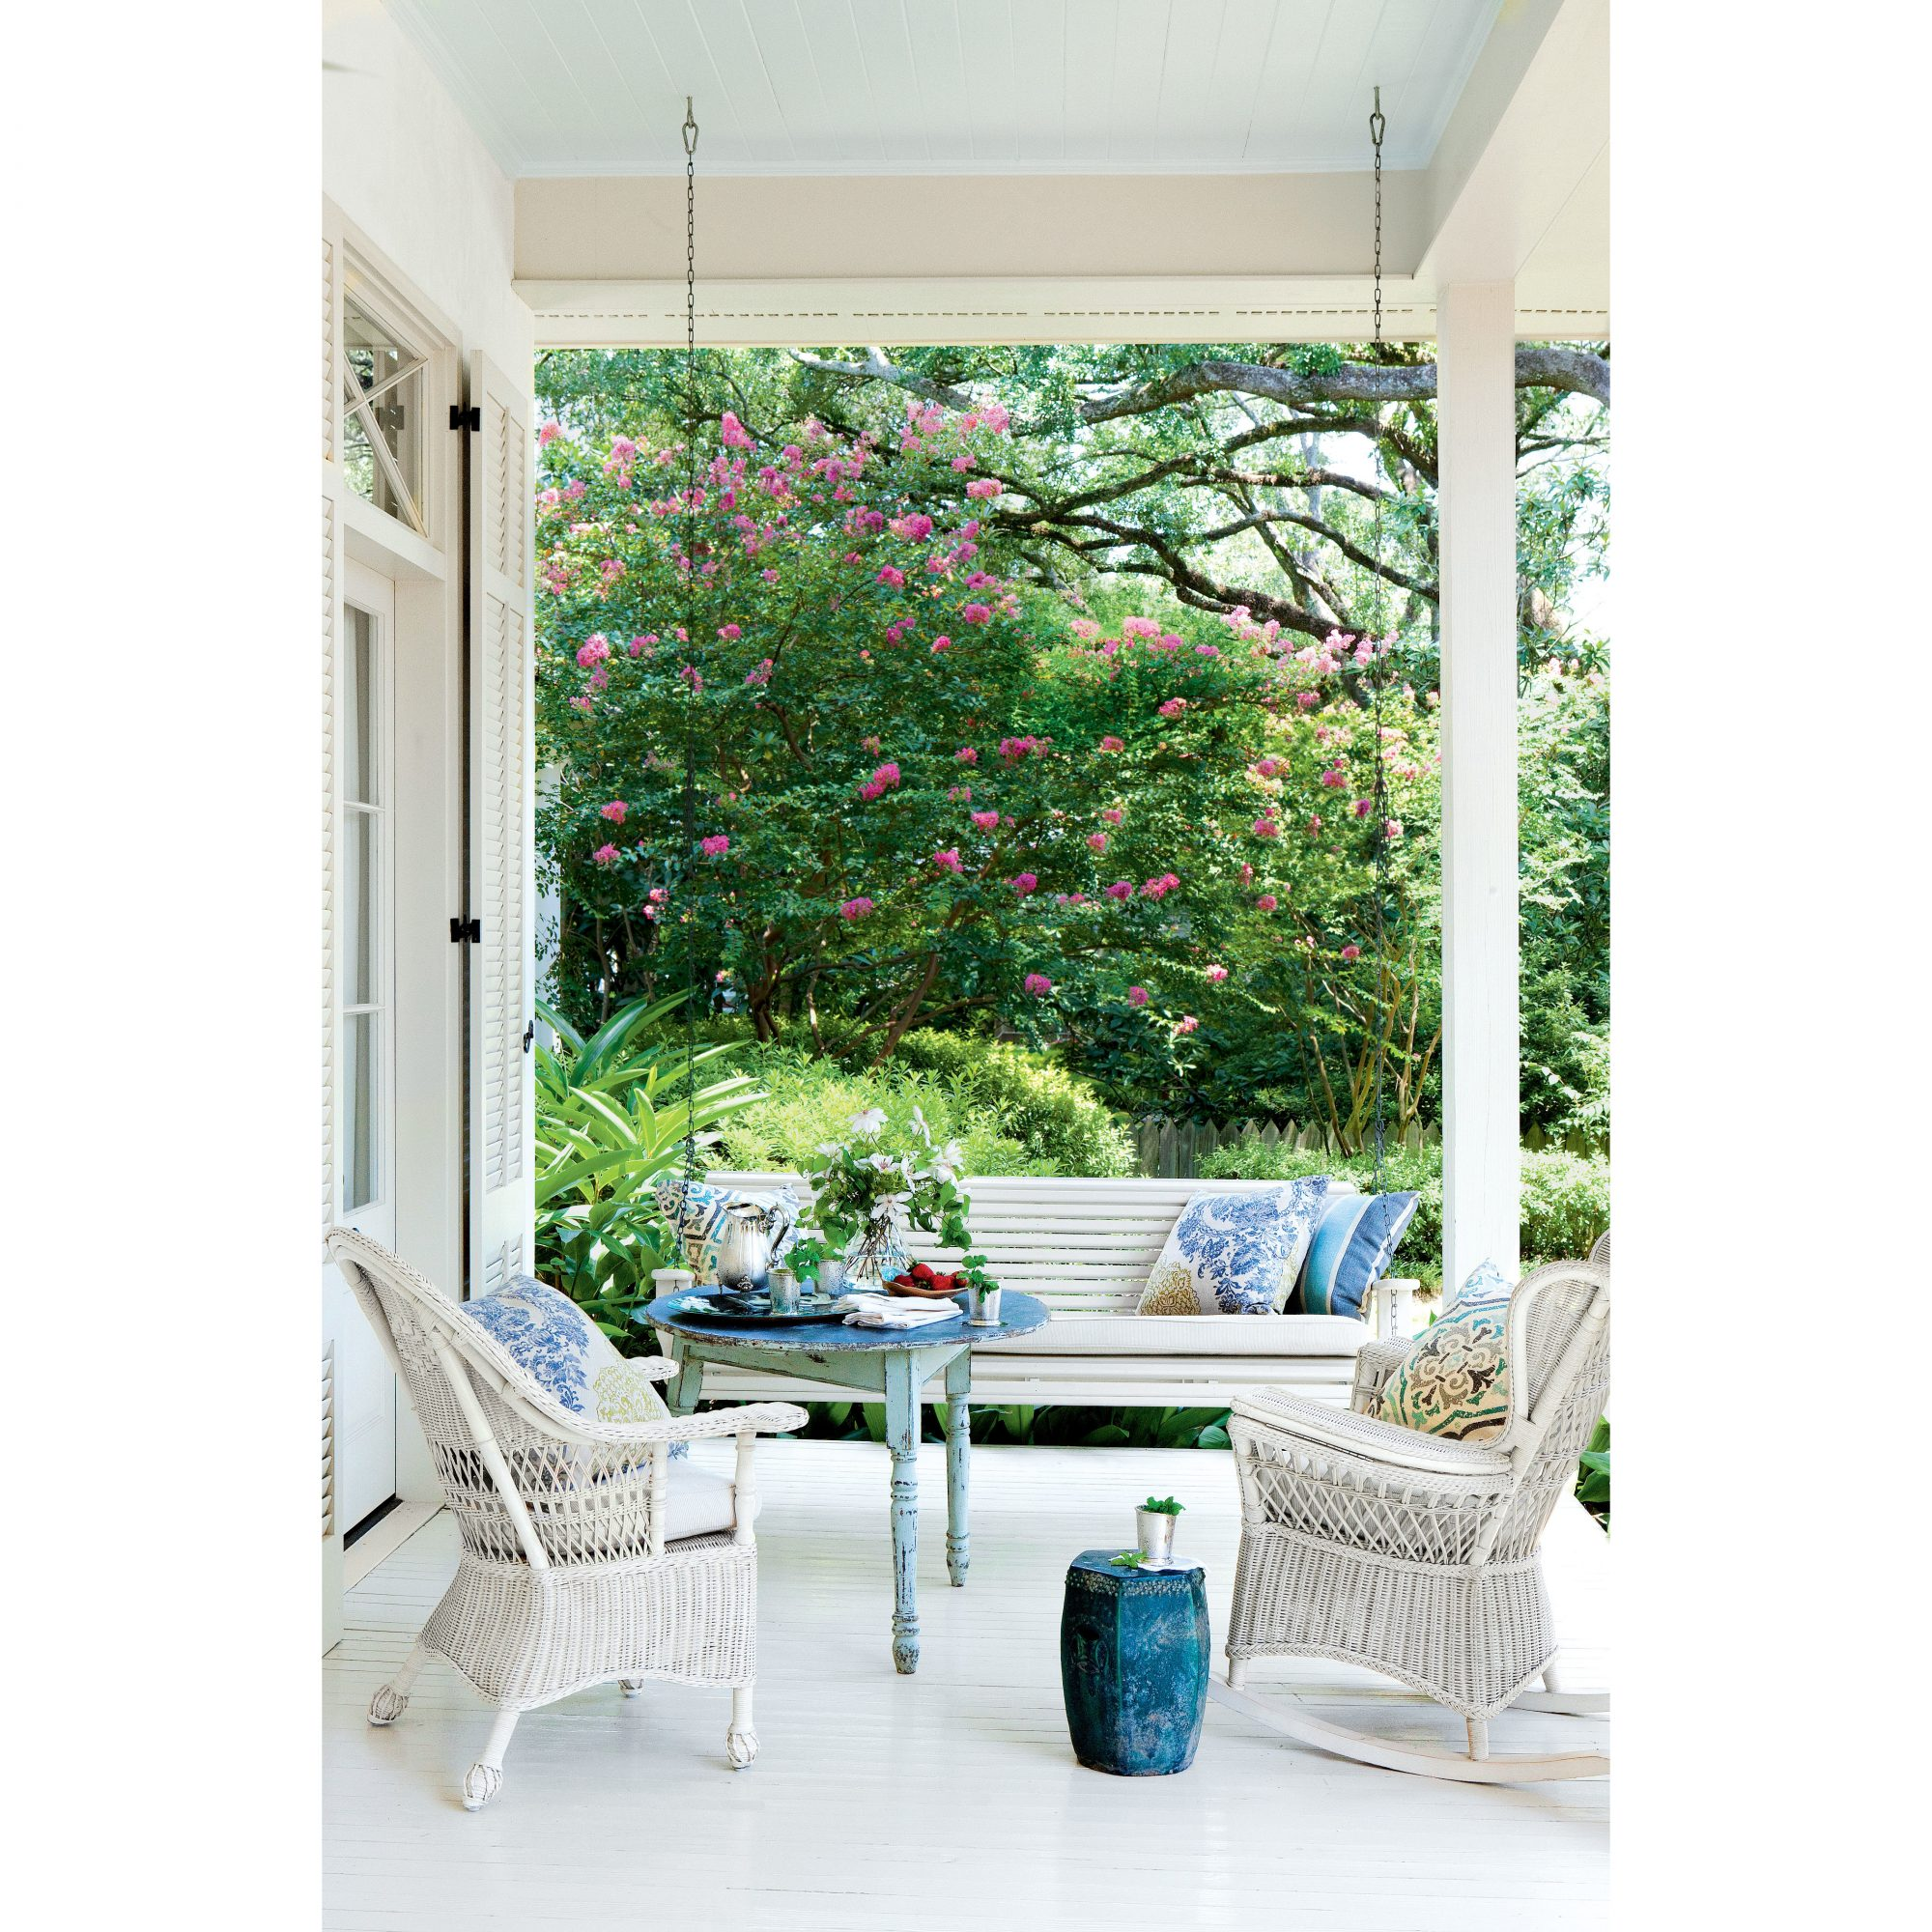 Blue and White Porch with Wicker Chairs and Swing